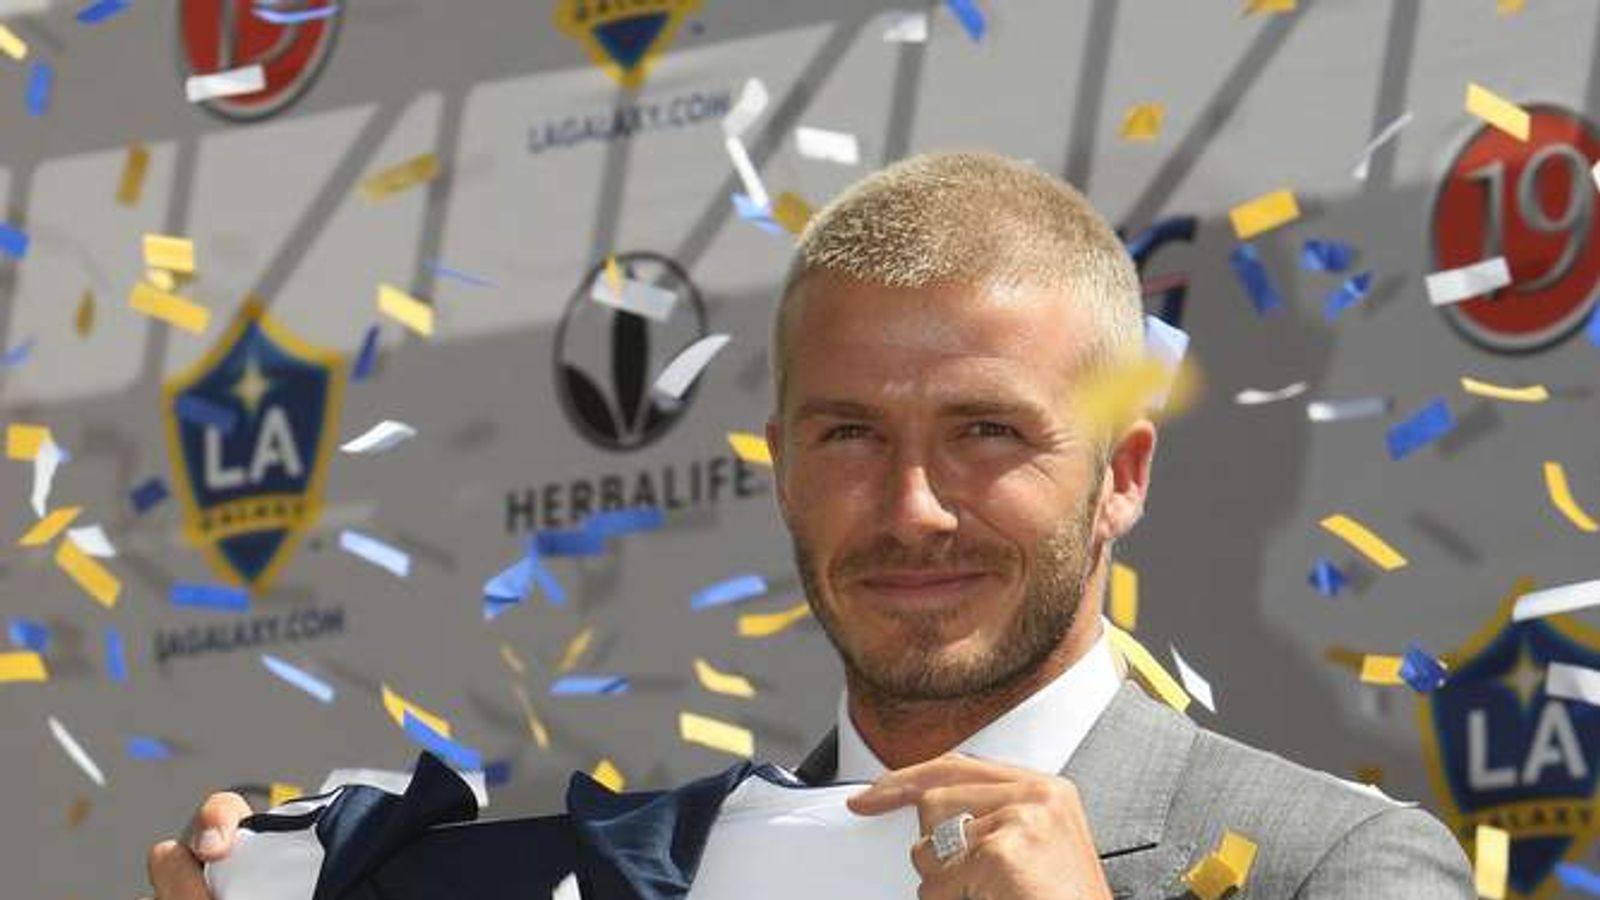 David Beckham announced as an LA Galaxy player